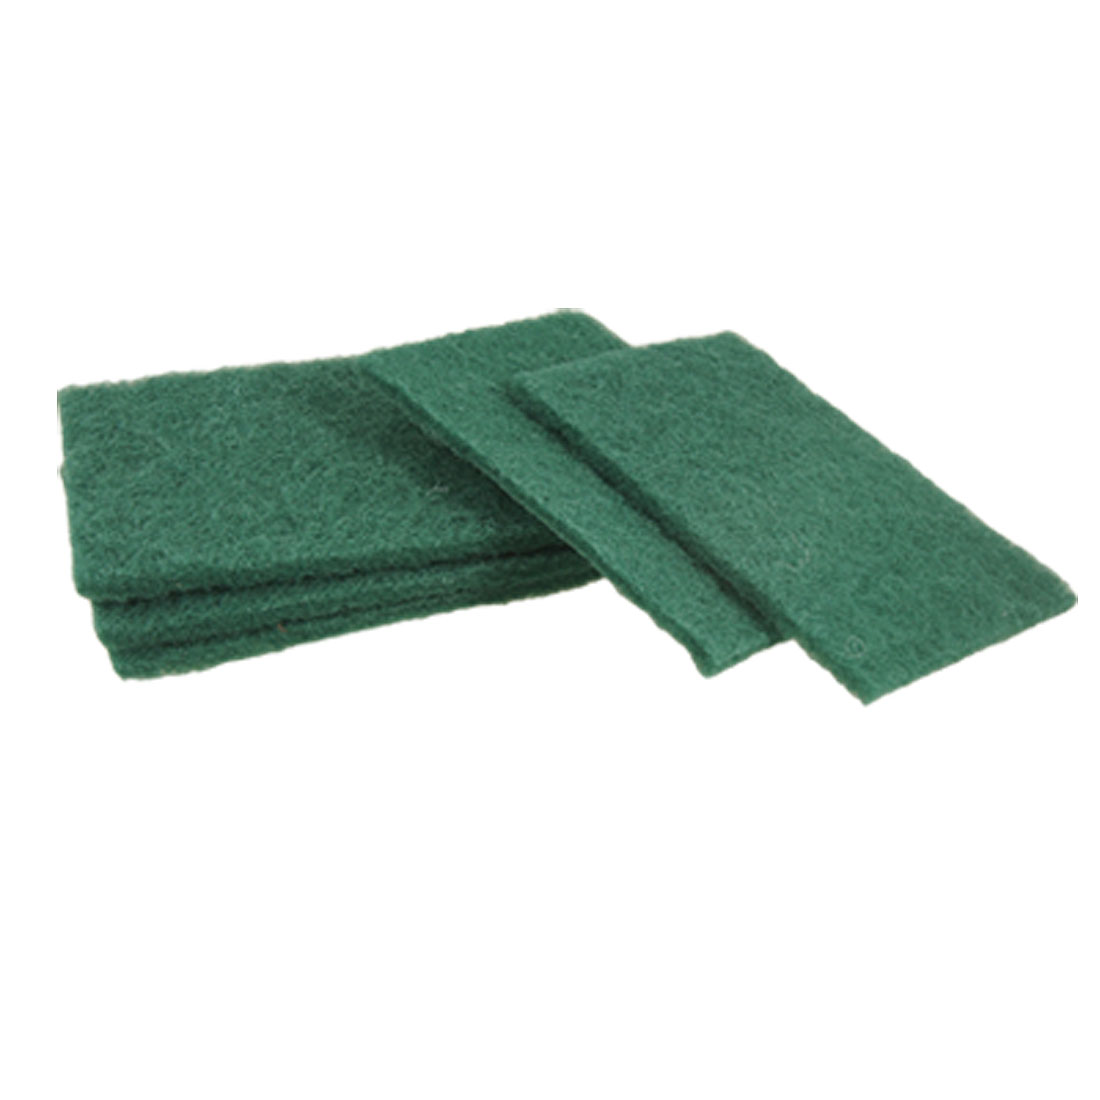 5 Pcs Dark Green Rectangle Kitchen Dish Bowl Scouring Scrub Pads